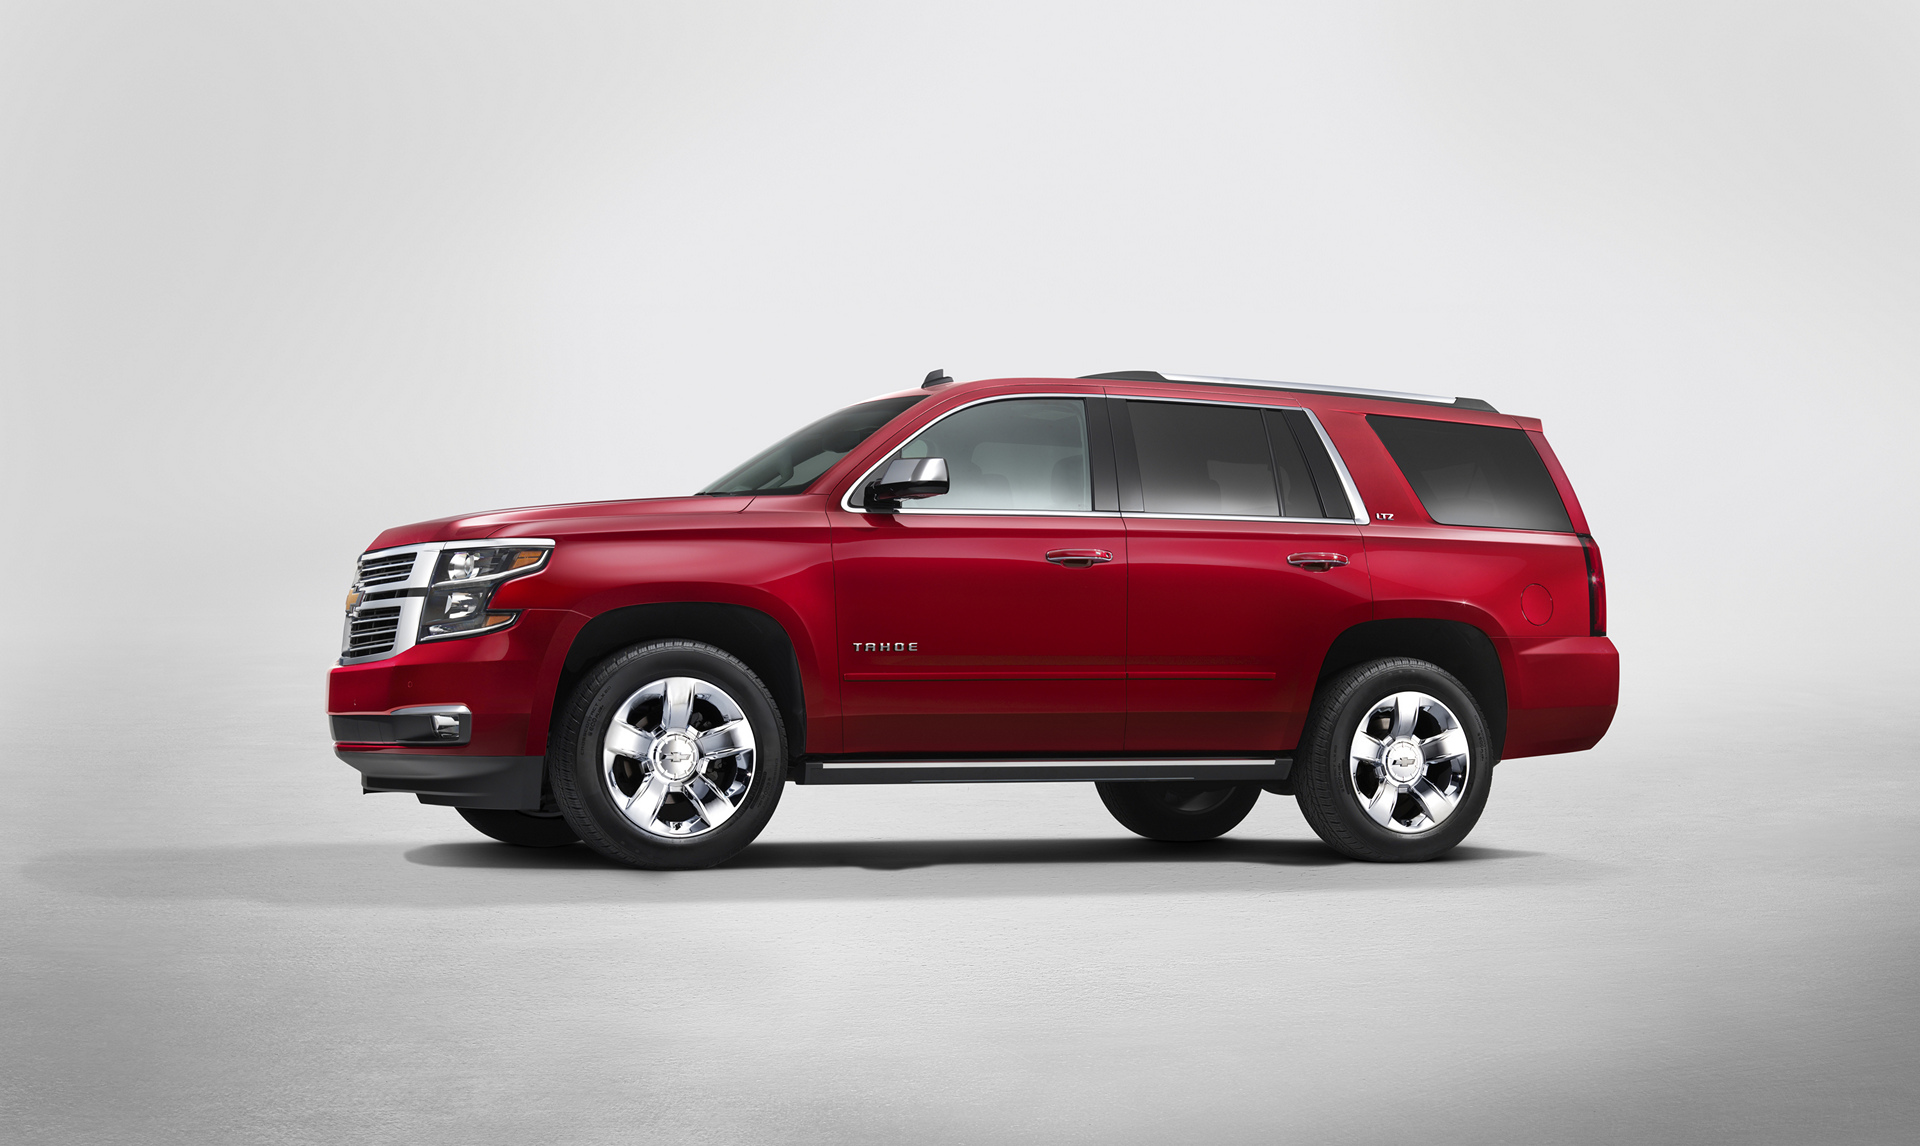 2016 Chevrolet Tahoe © General Motors